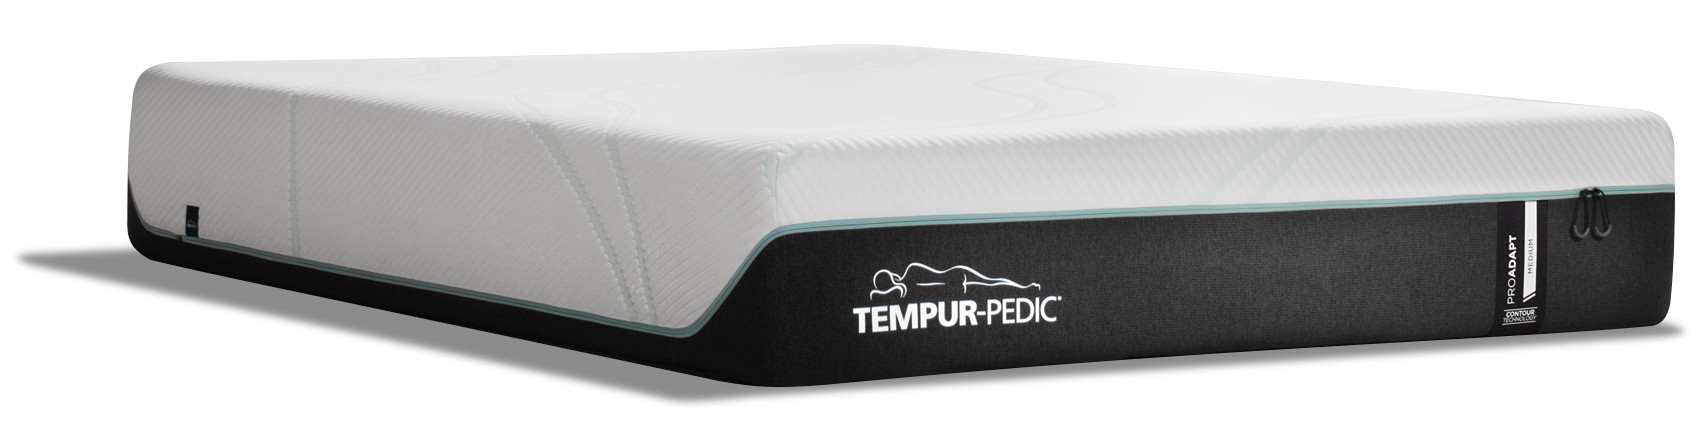 Featuring TEMPUR-APR™